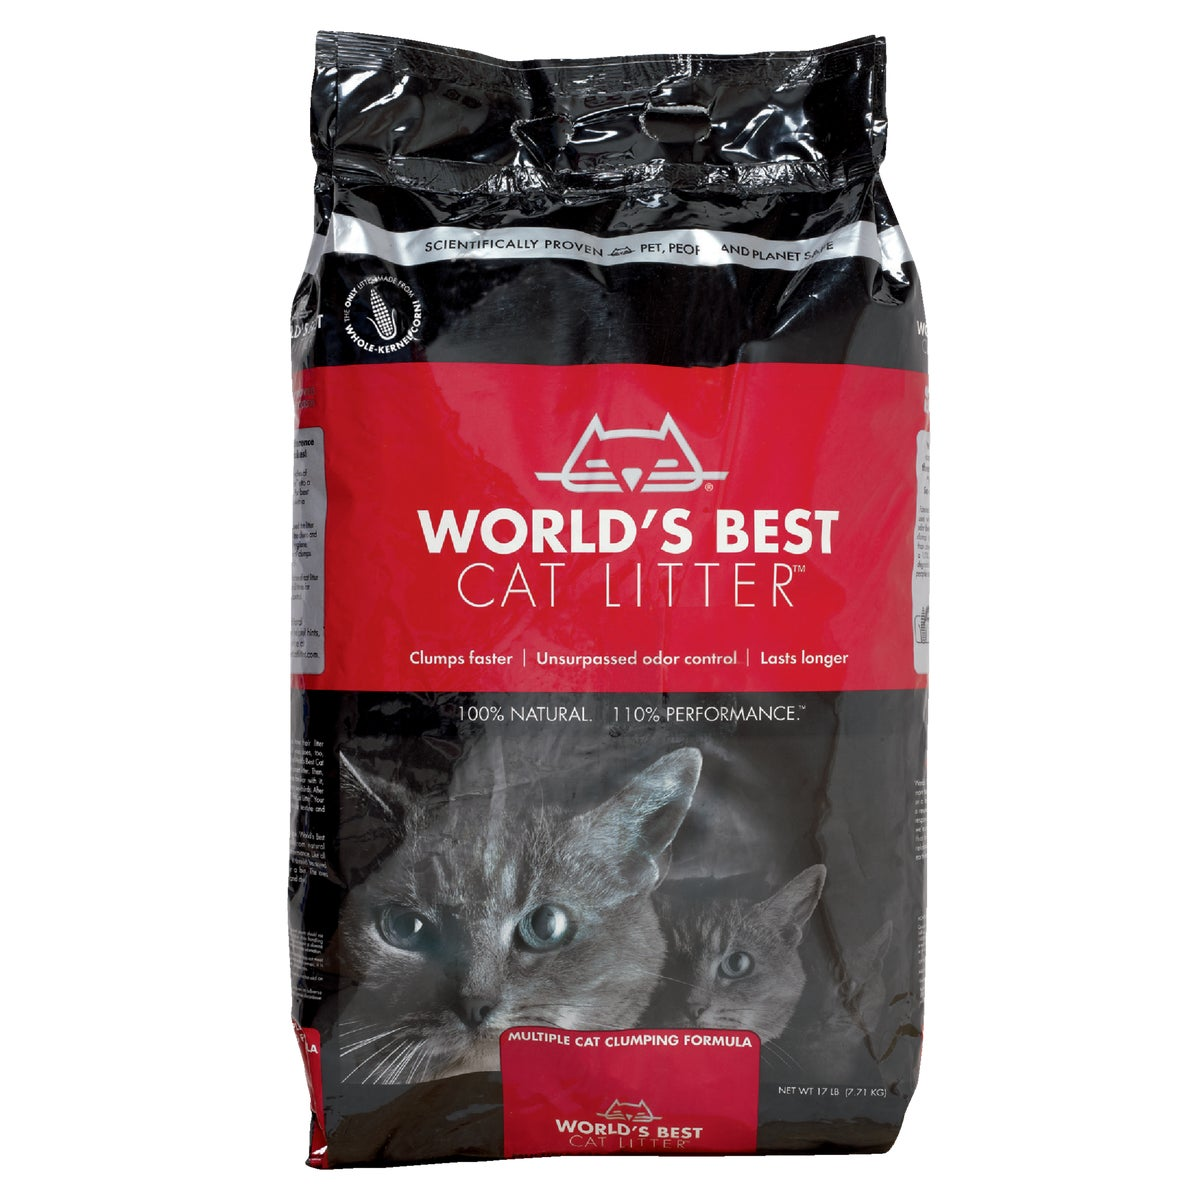 14LB WRLD BST CAT LITTER